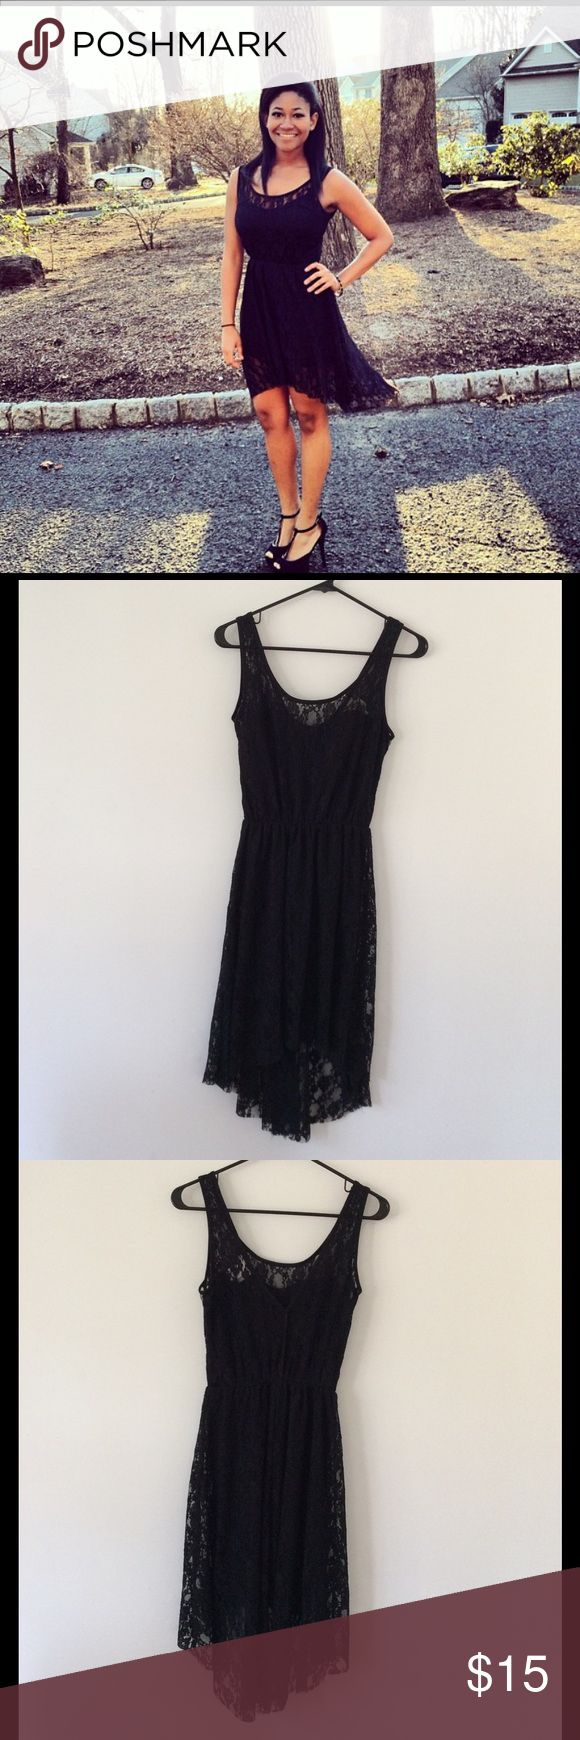 "Pretty Short Front Long Back Dress - Size Medium Sleeveless floral lace dress, short in front & longer in the back, lined from the waist down, V back (see 4th pic), elastic waist. Length: 34"" (front - shoulder to hem), Back is 7 3/4"" longer than the front, Bust: 16"" (armpit to armpit), Waist: 10"".   90% Nylon, 10% Spandex, Lining-100% Polyester. Pretty Rebellious Dresses"